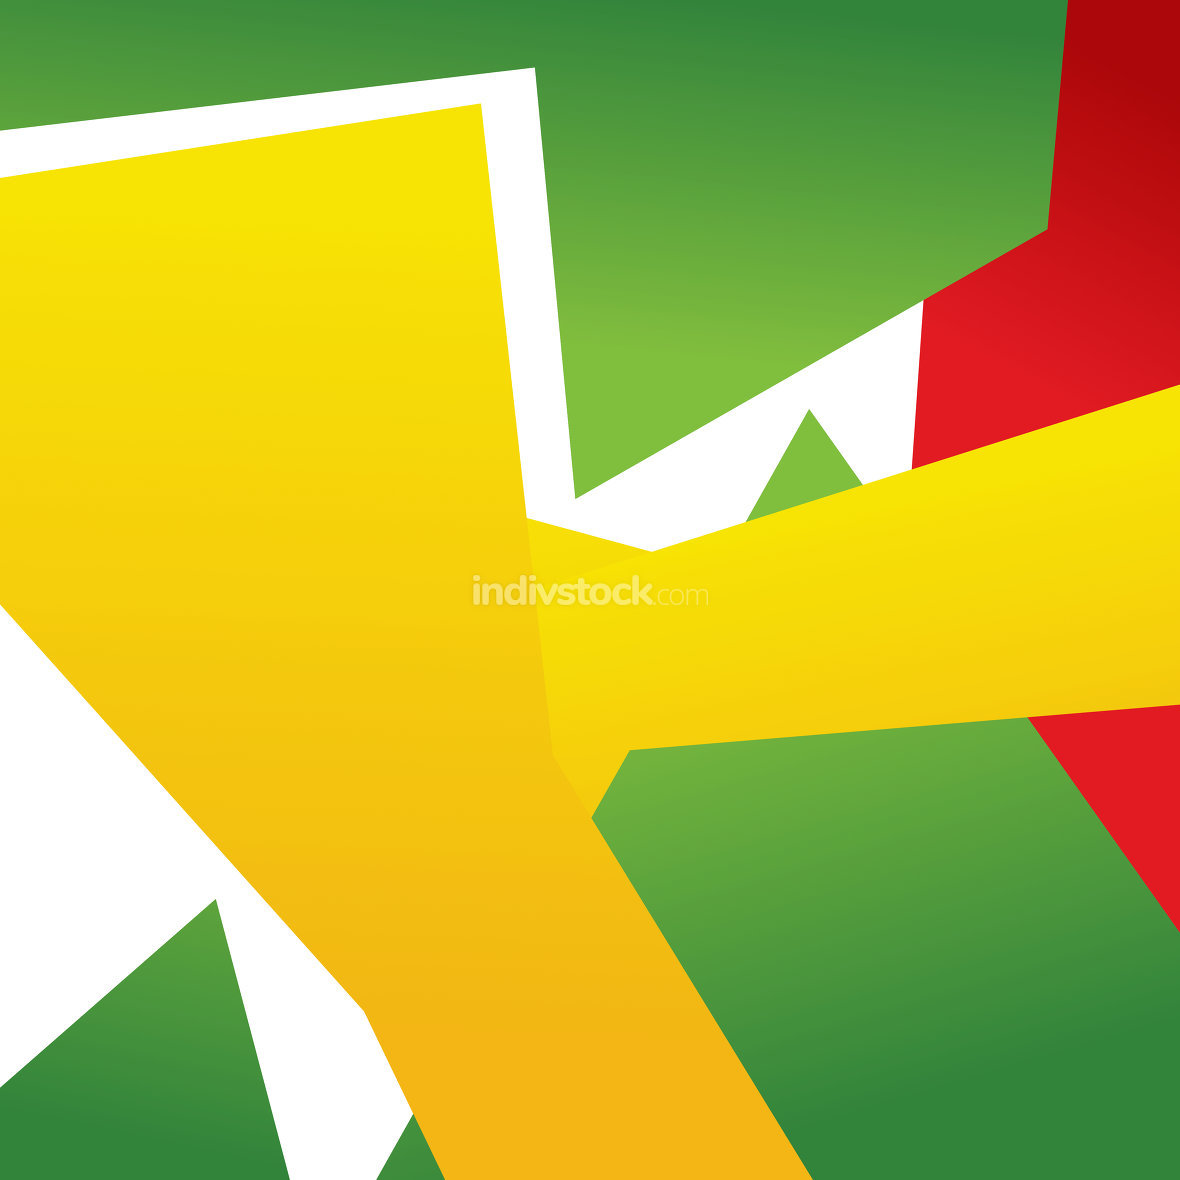 Abstract Brazil Colored Design